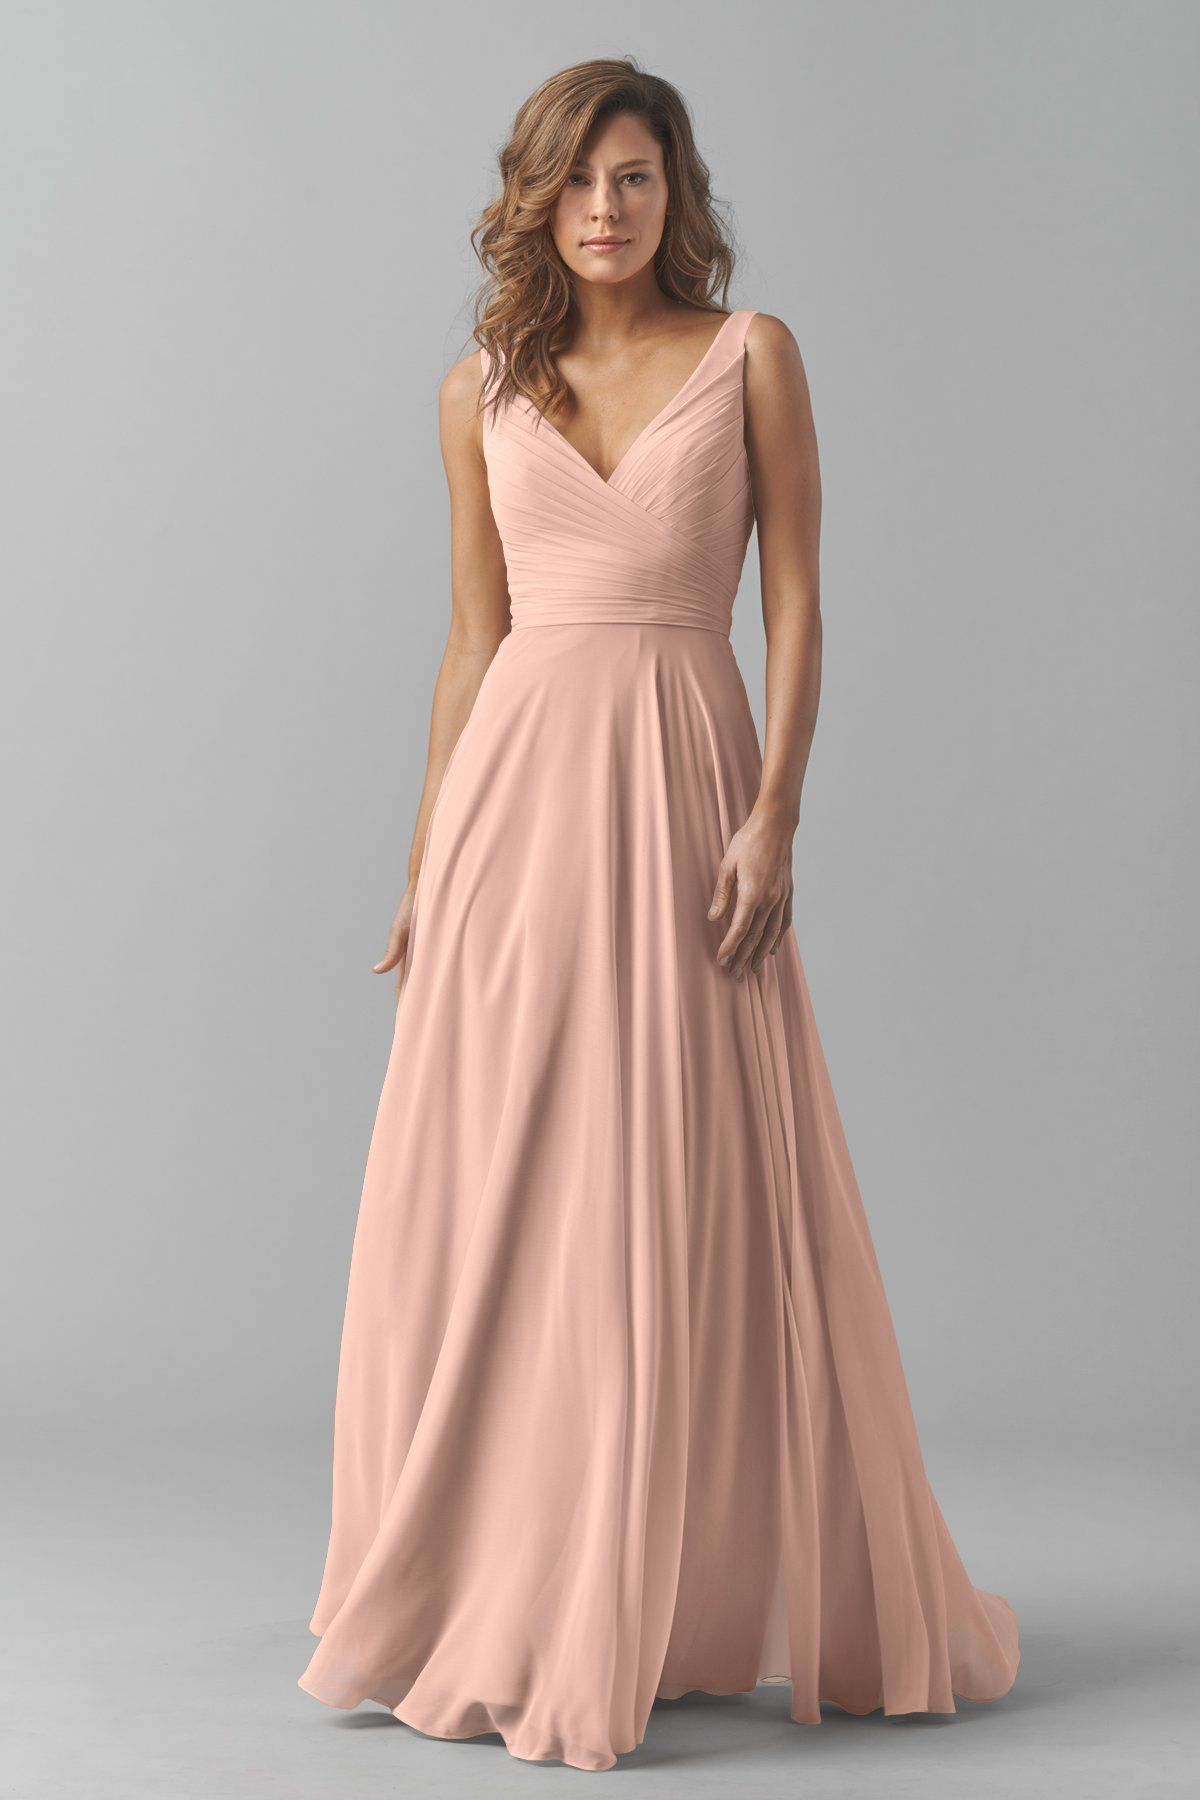 d4183c1e23f71 Wddington Way. $280. Watters 8542i Bridesmaid Dress in Blush in ...